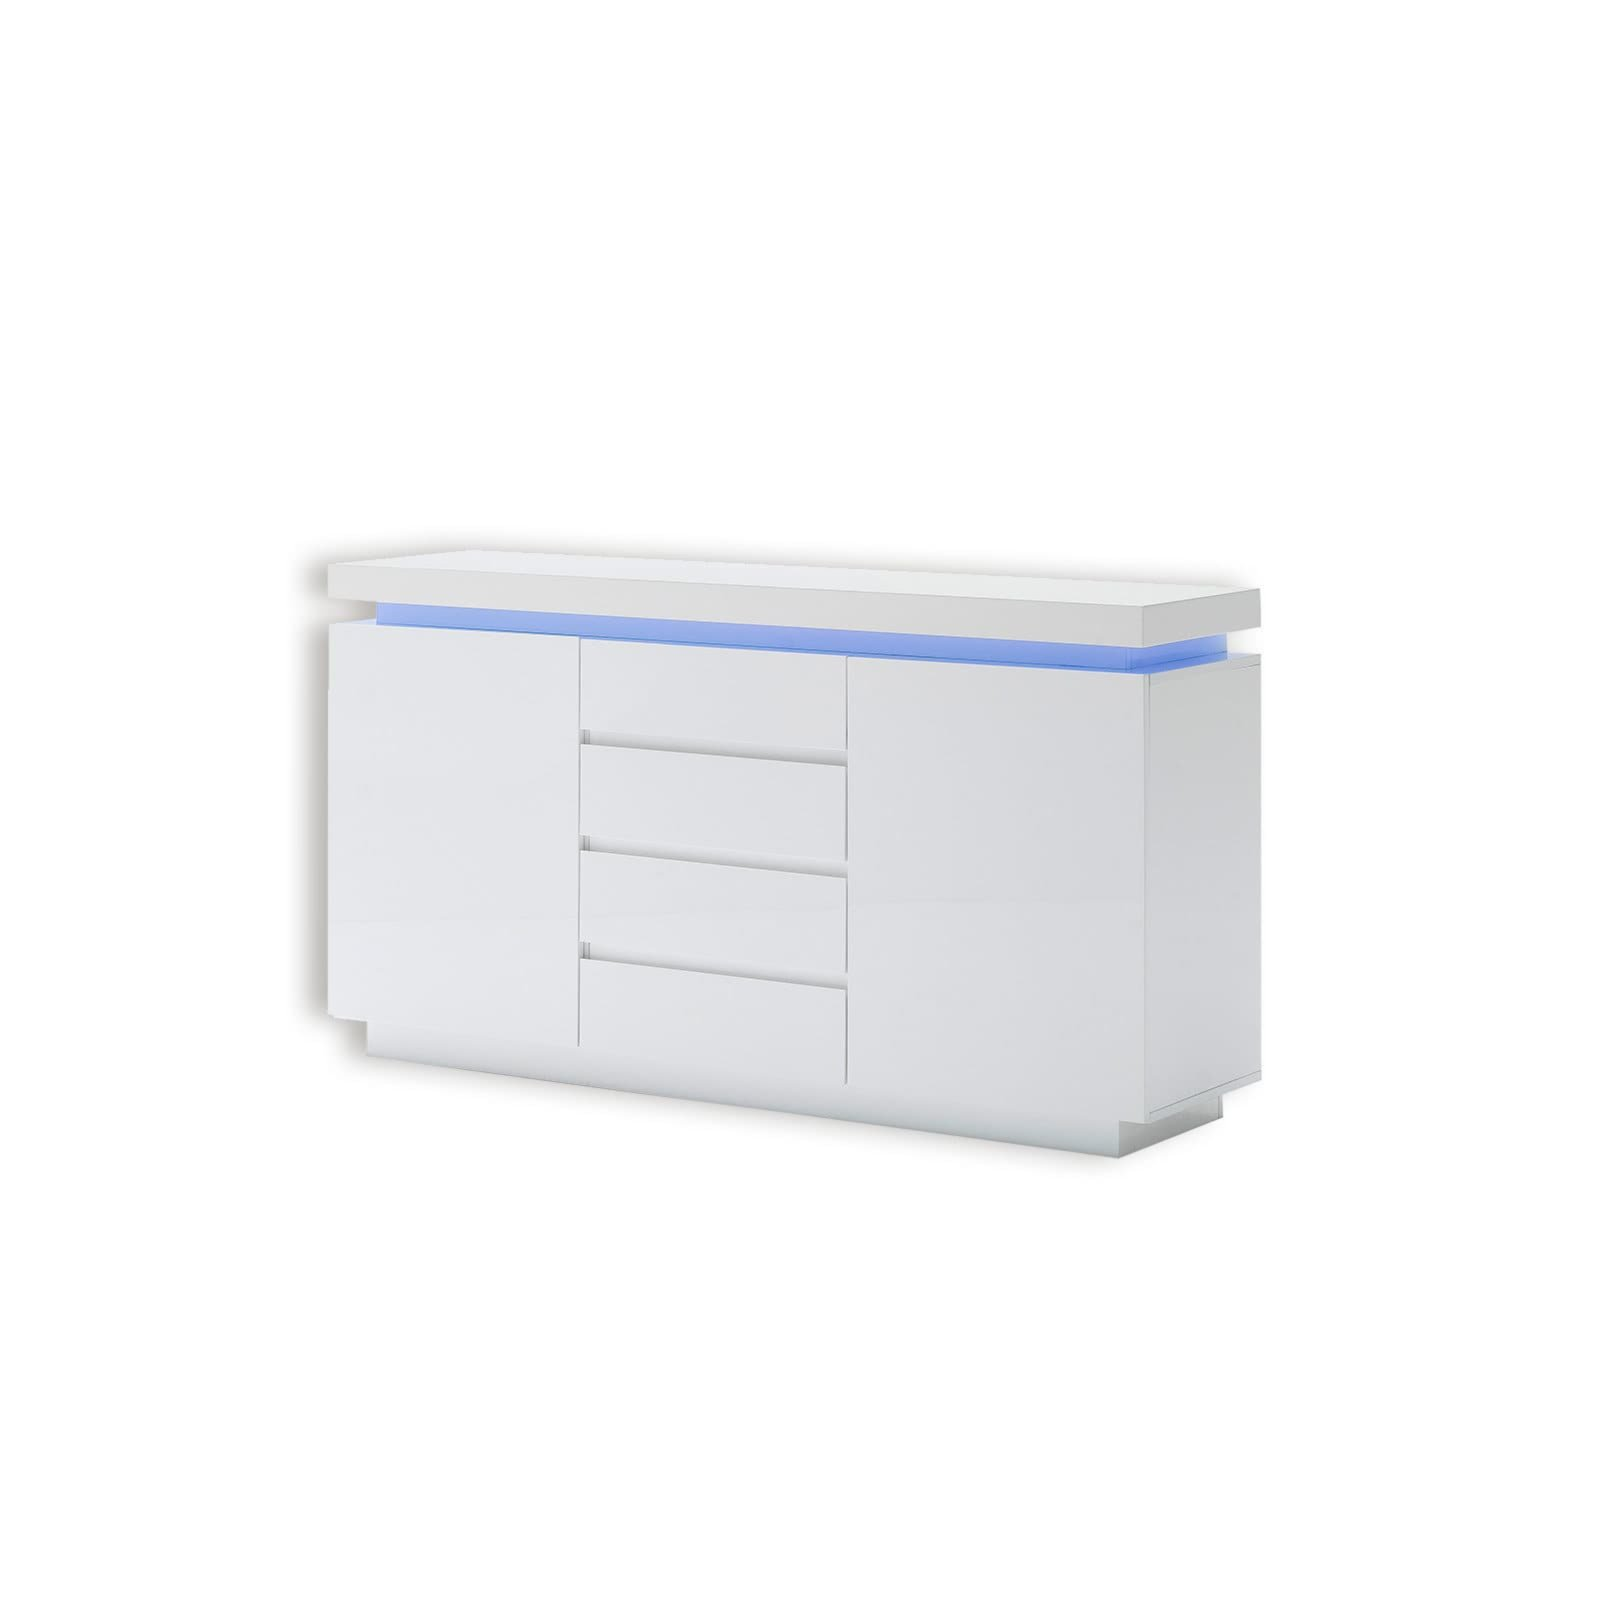 Sideboard ocean i wei led rgb beleuchtung kommoden for Sideboard 3 meter lang